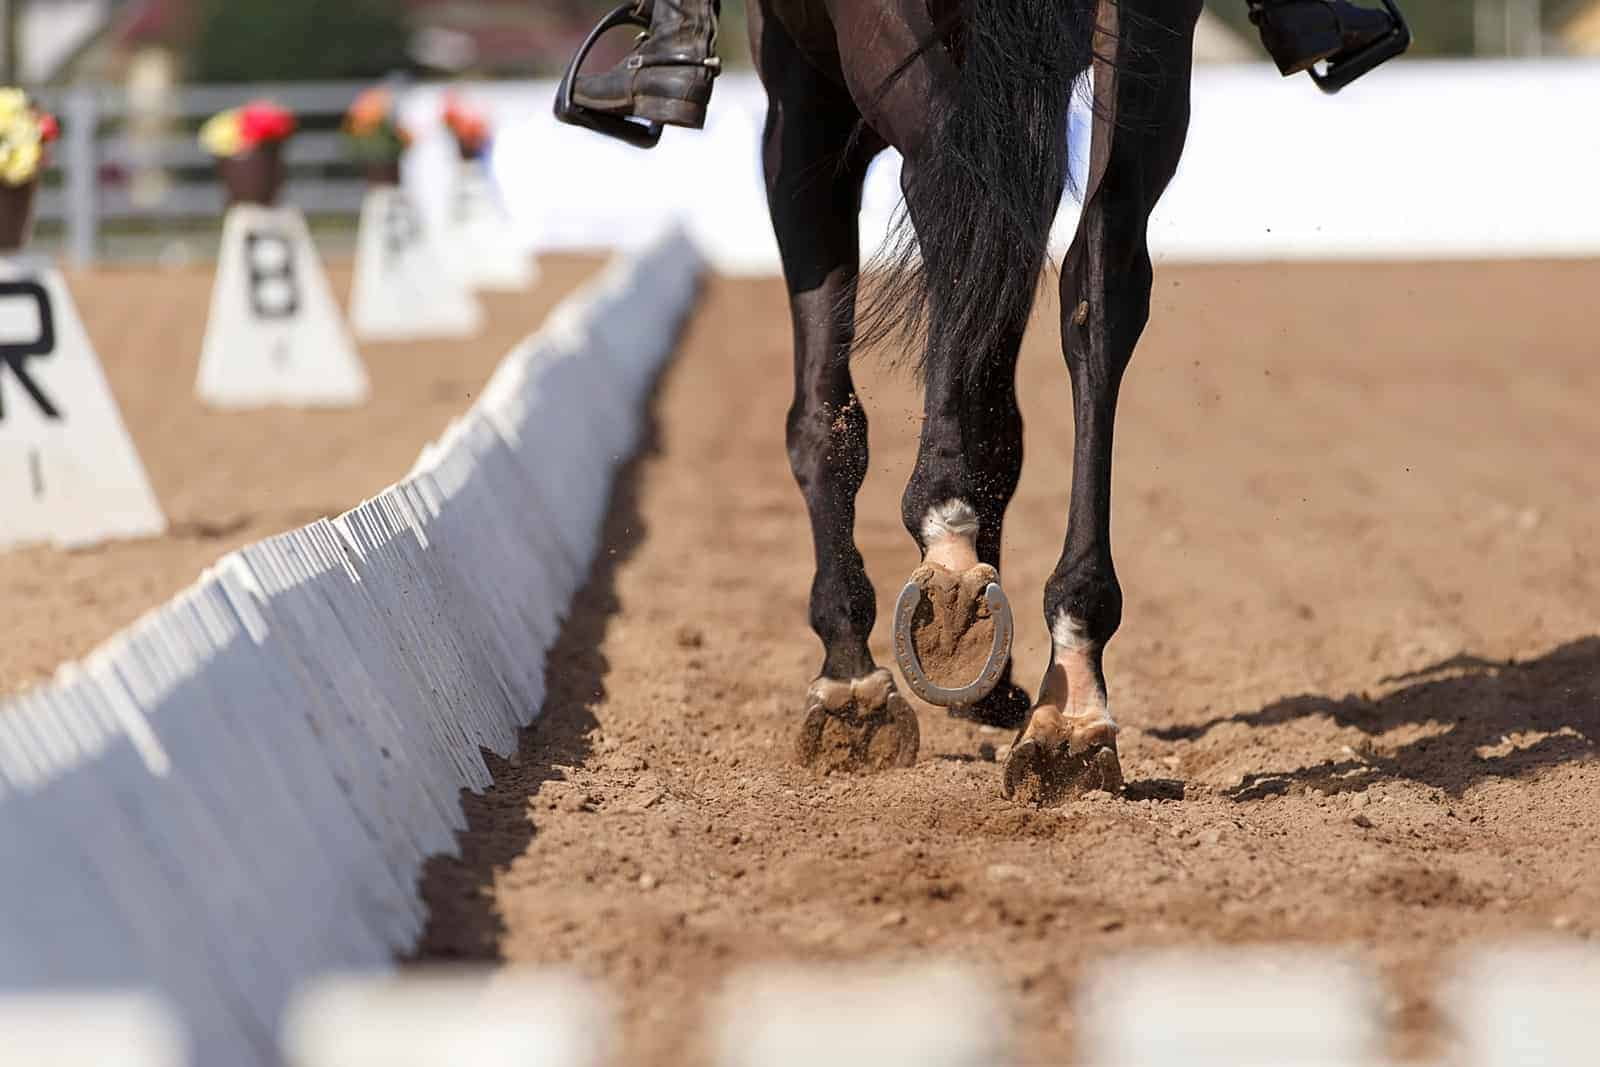 dressage-horse-hooves-in-arena-1.jpg